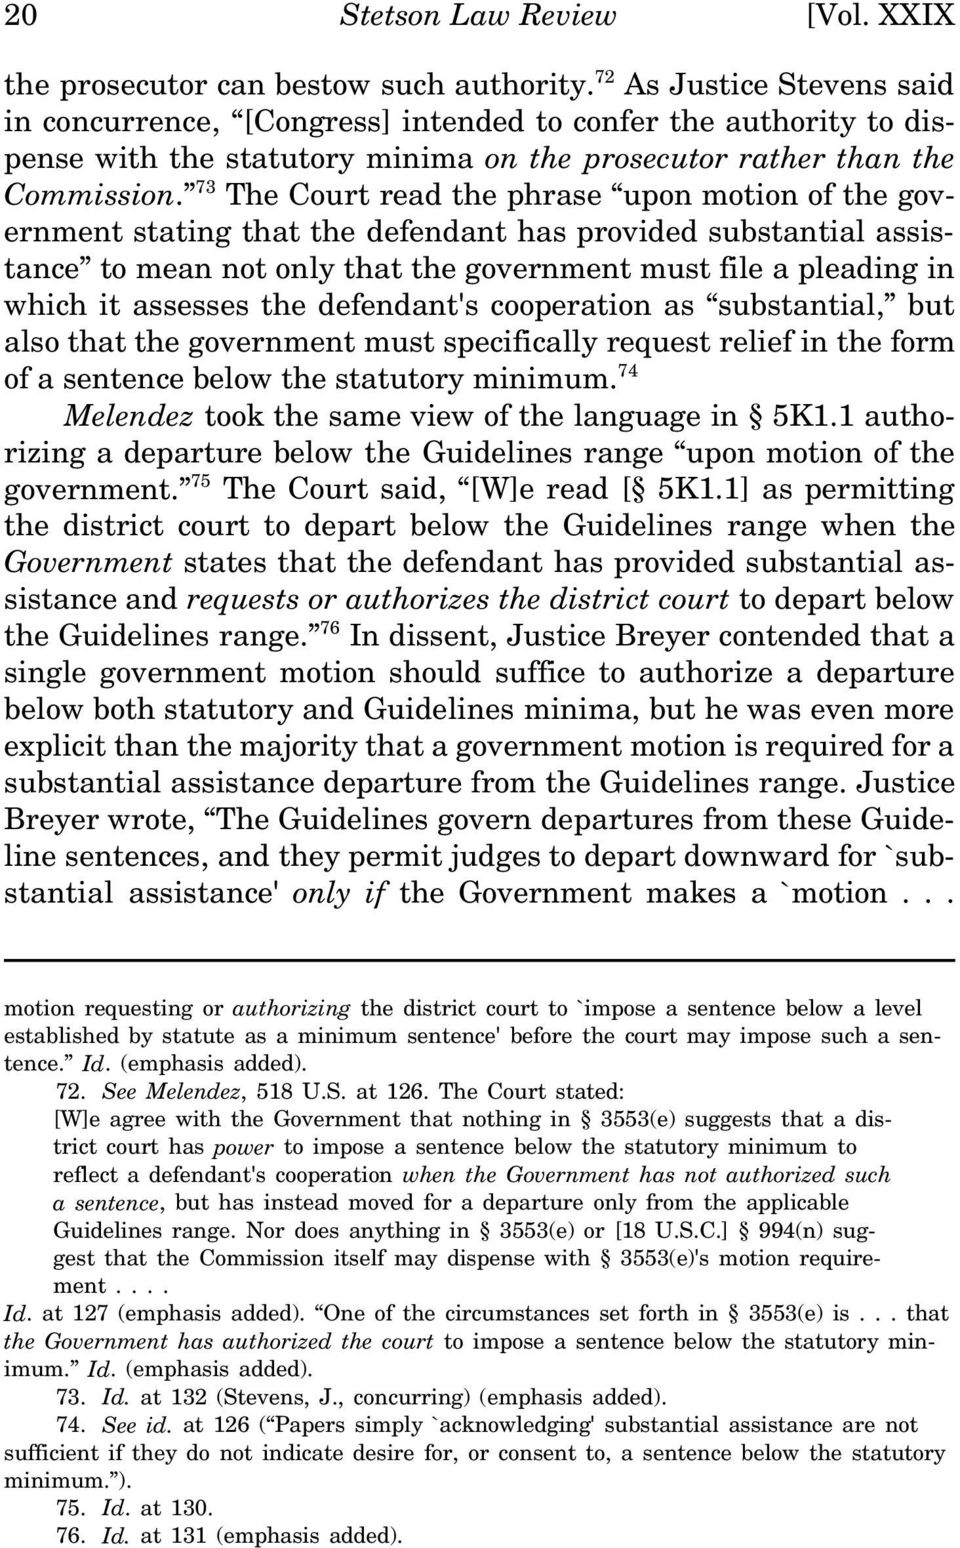 73 The Court read the phrase upon motion of the government stating that the defendant has provided substantial assistance to mean not only that the government must file a pleading in which it